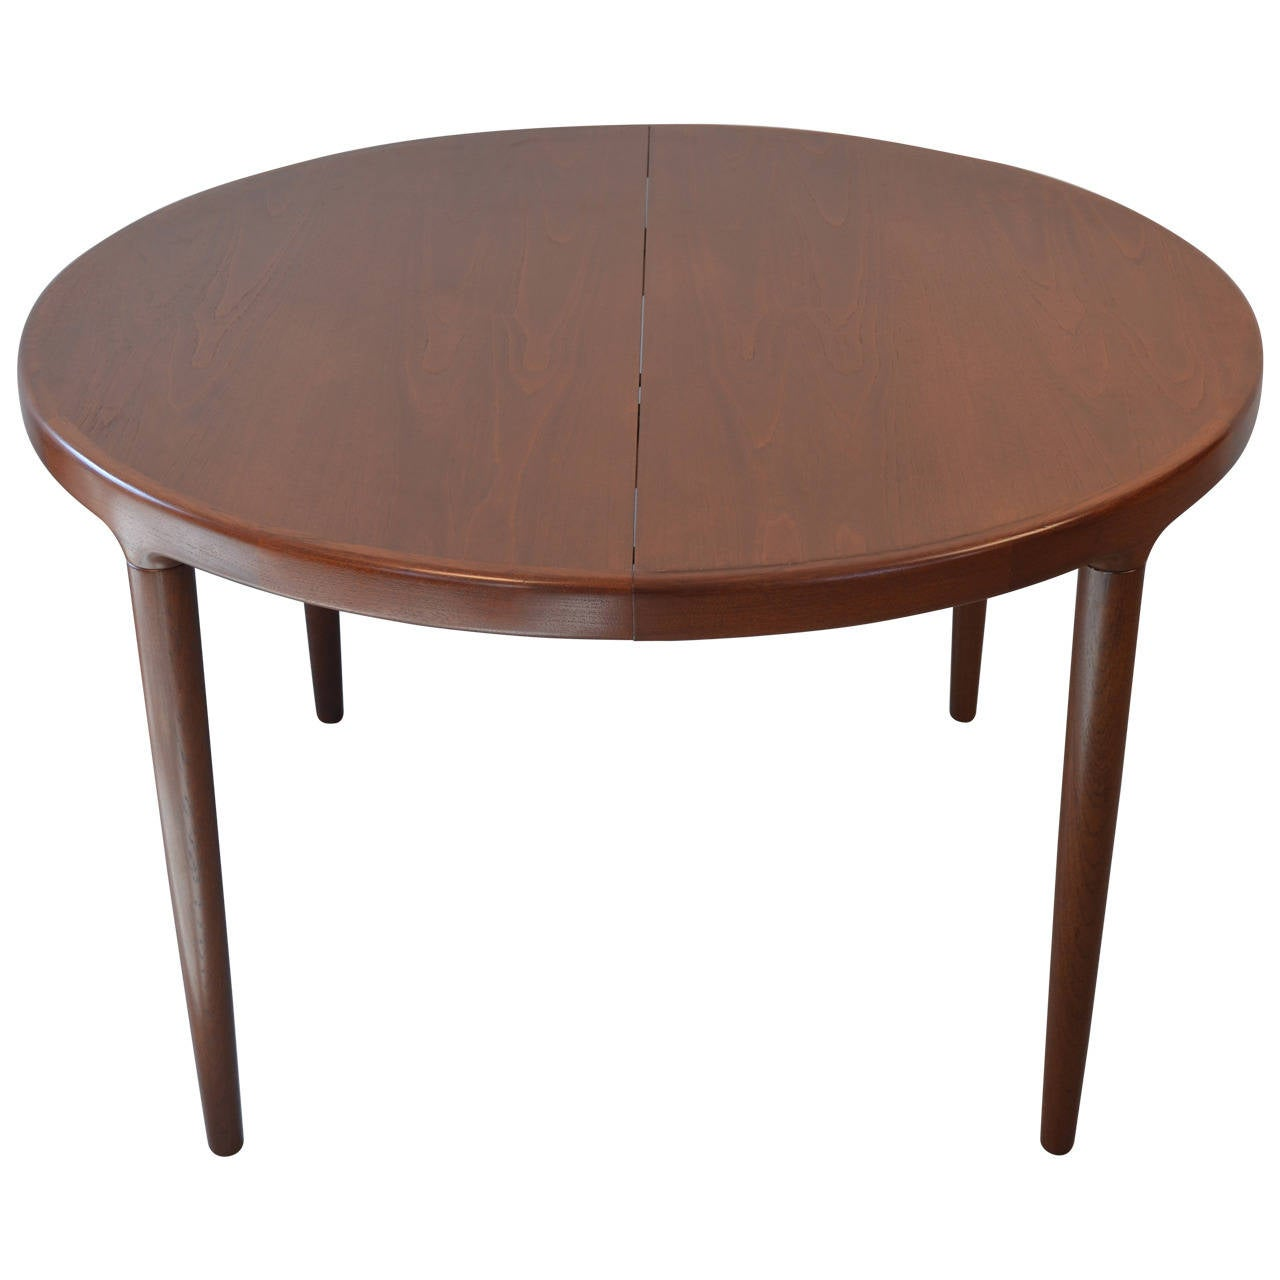 Round dining table with two leaves for sale at 1stdibs for Dining room table 2